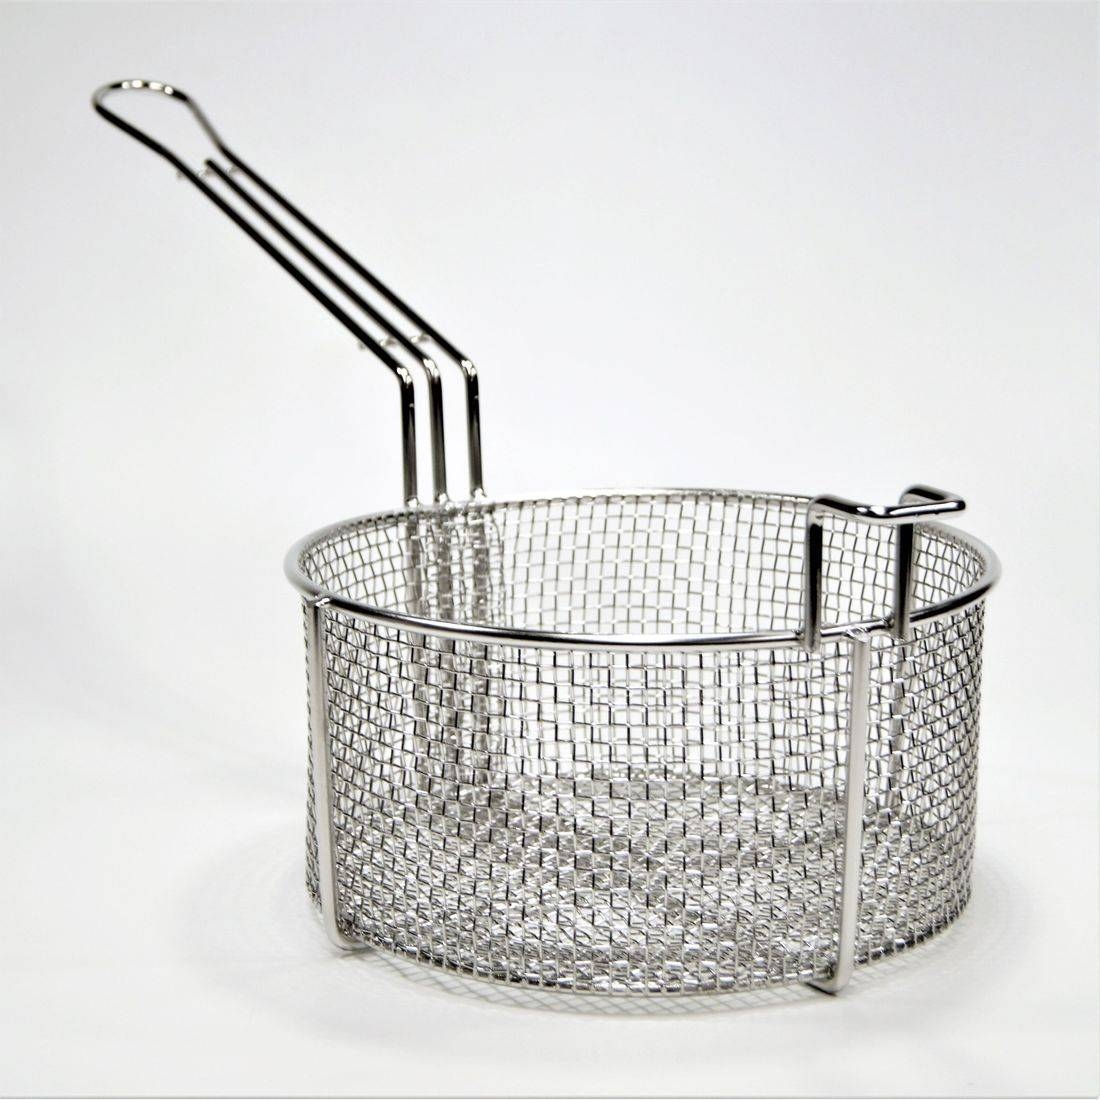 Stainless Steel Culinary Basket